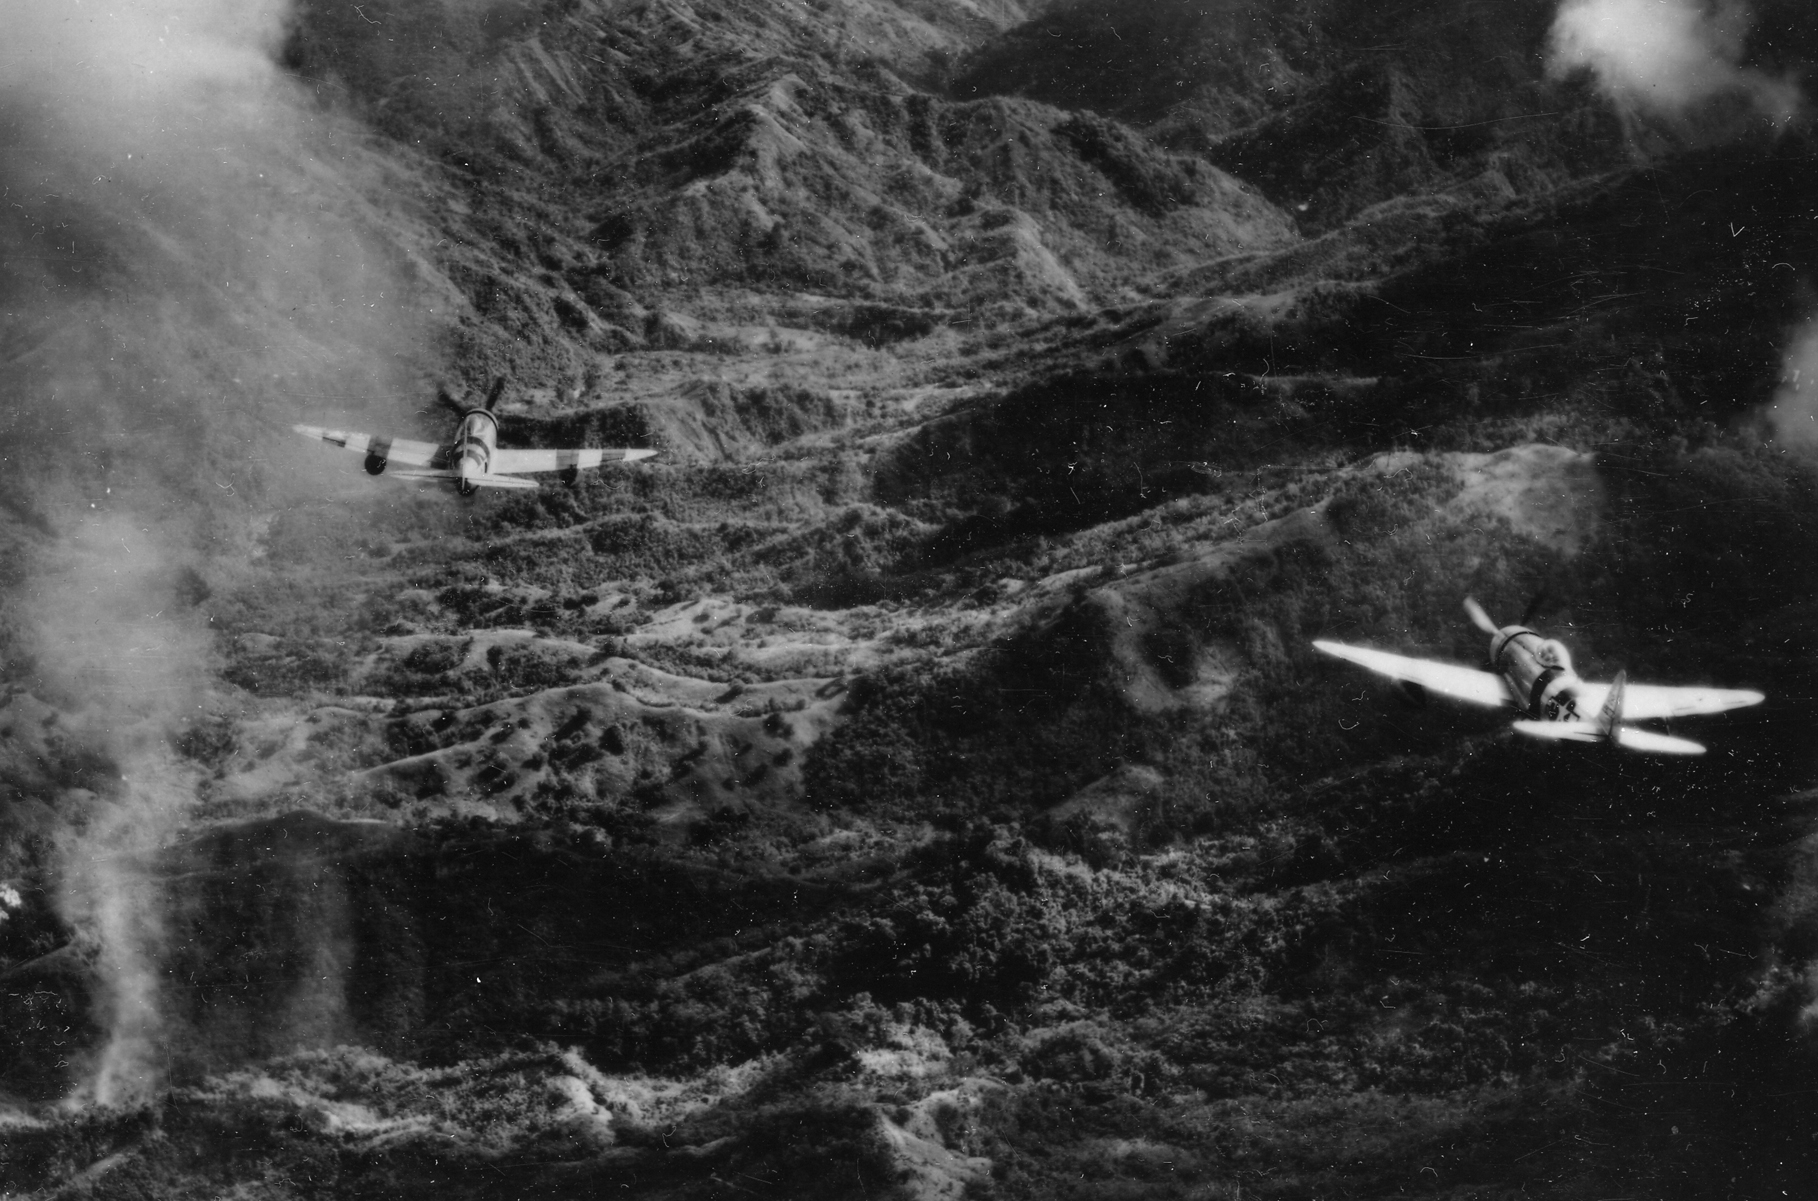 5th af p47 bombing ipo dam area 4x6